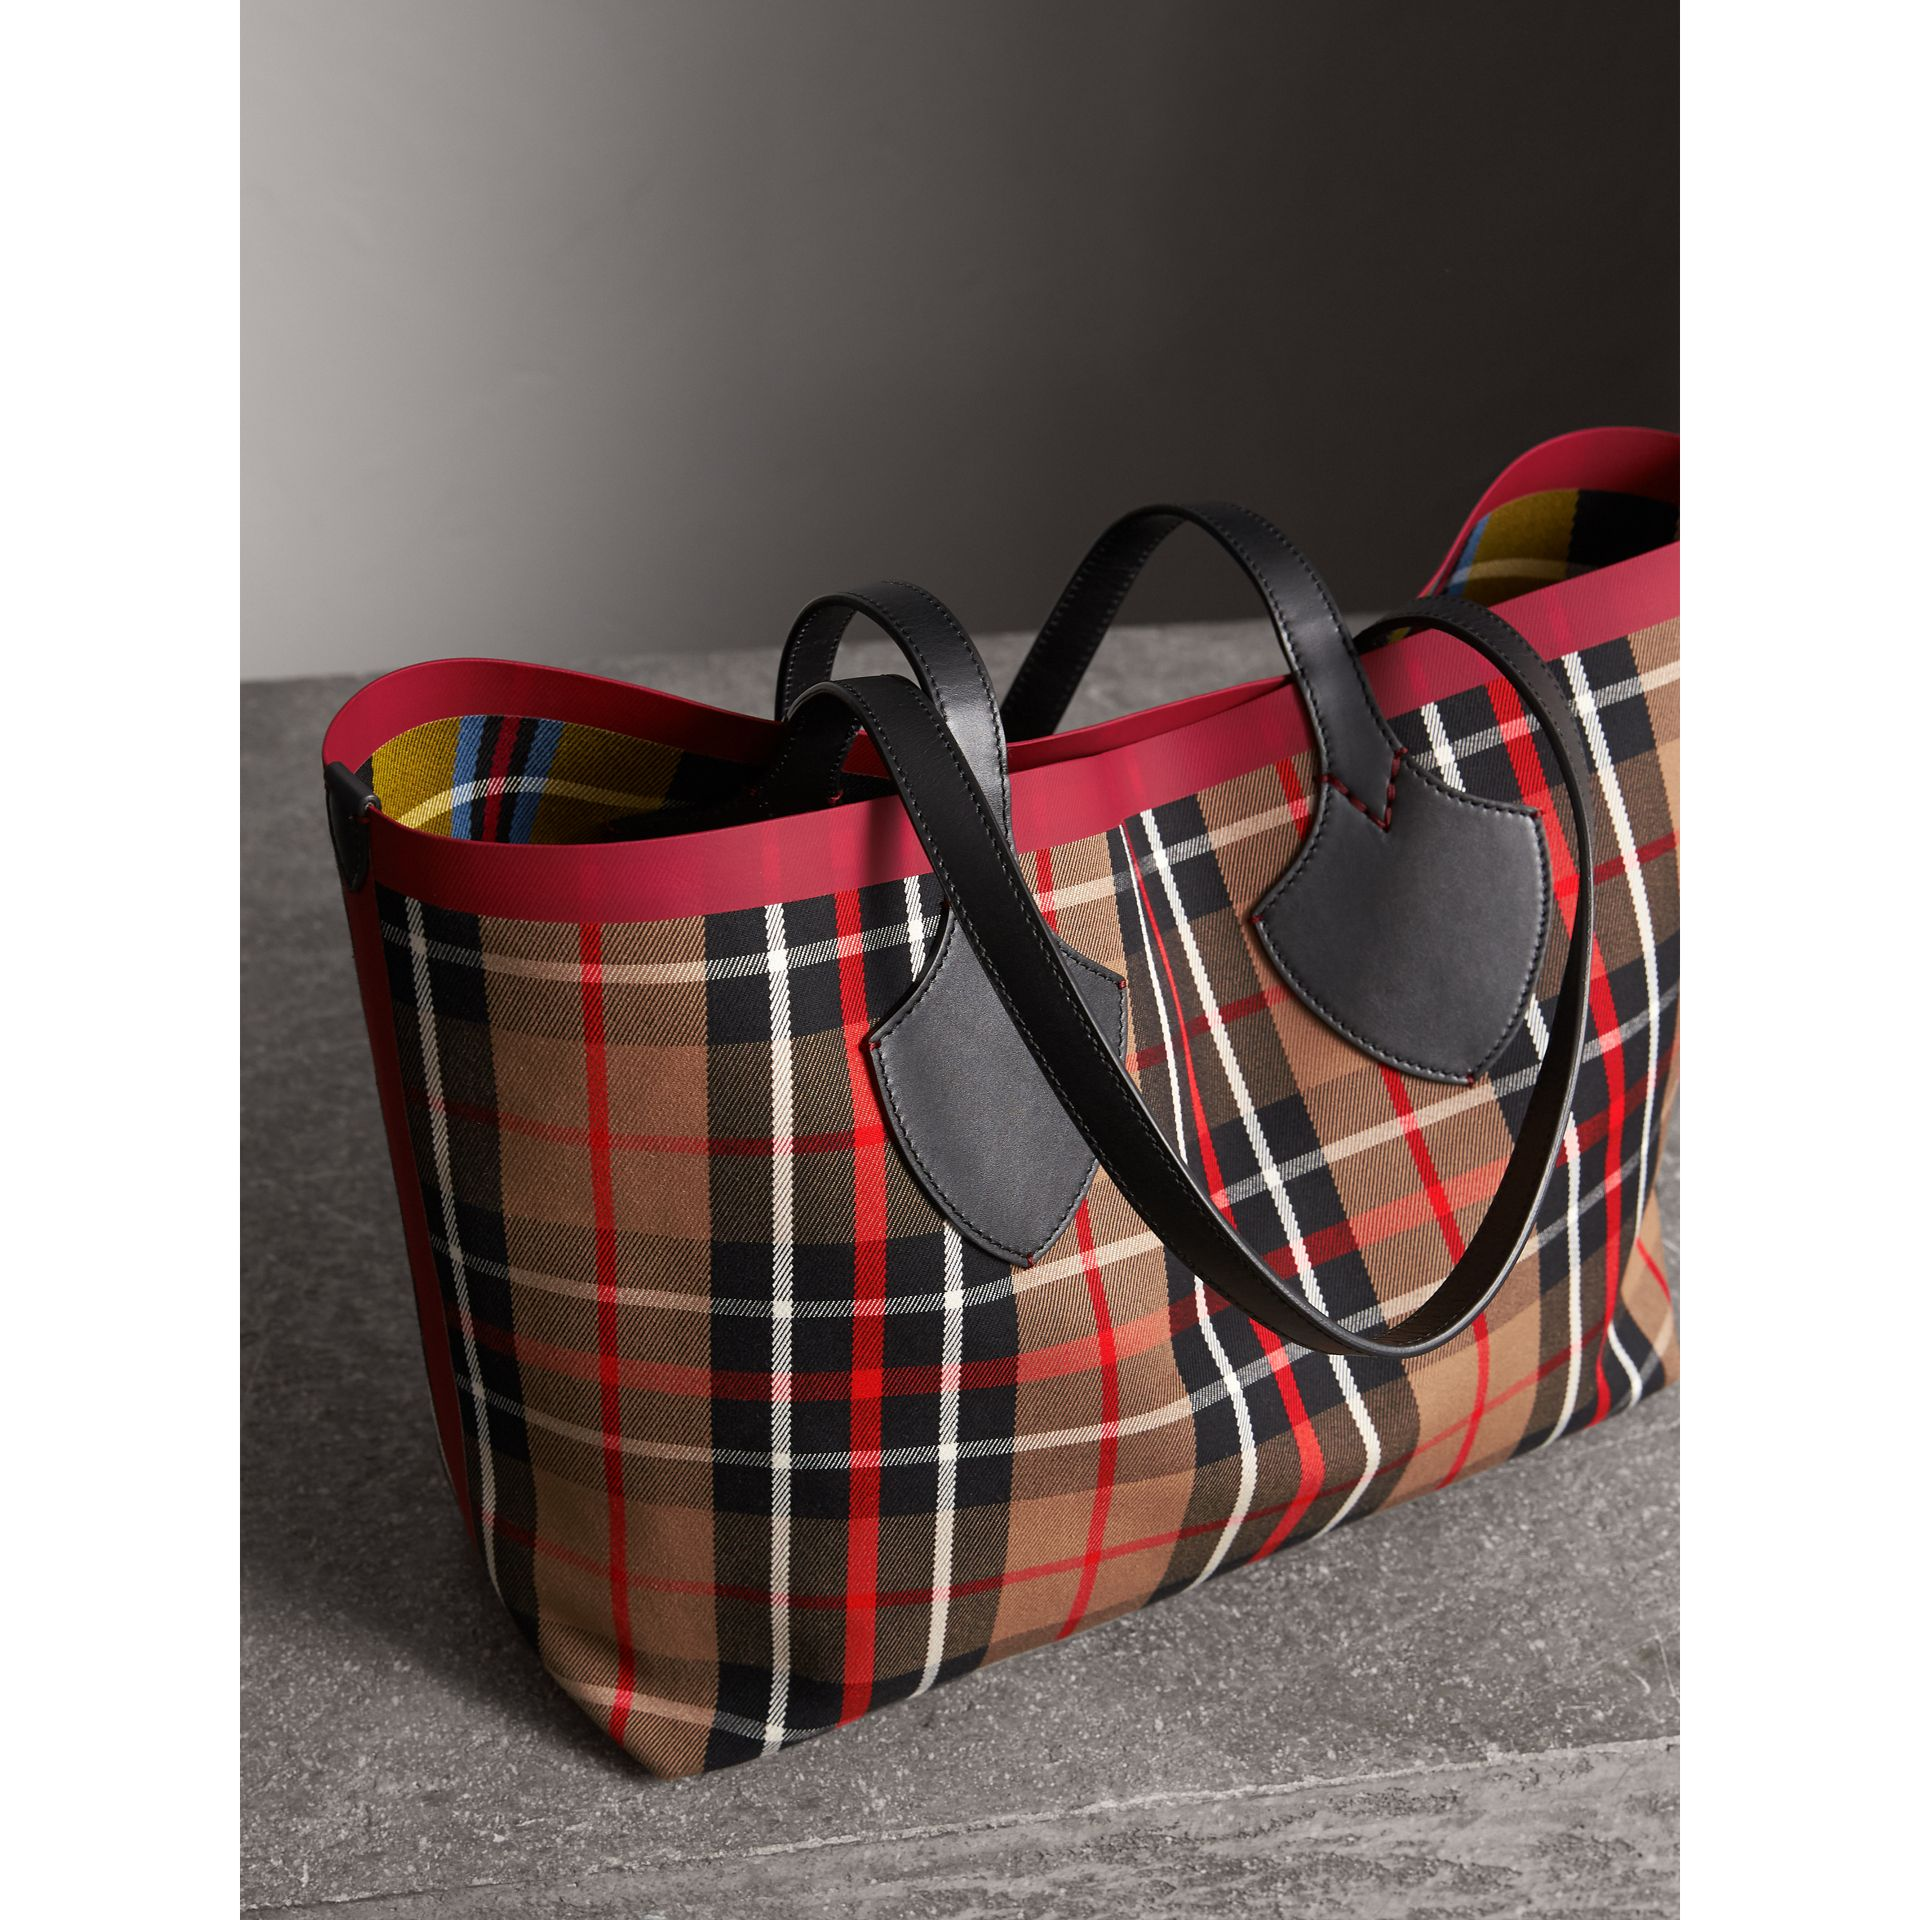 Sac tote The Giant moyen réversible en coton tartan (Caramel/jaune Lin) | Burberry Canada - photo de la galerie 4